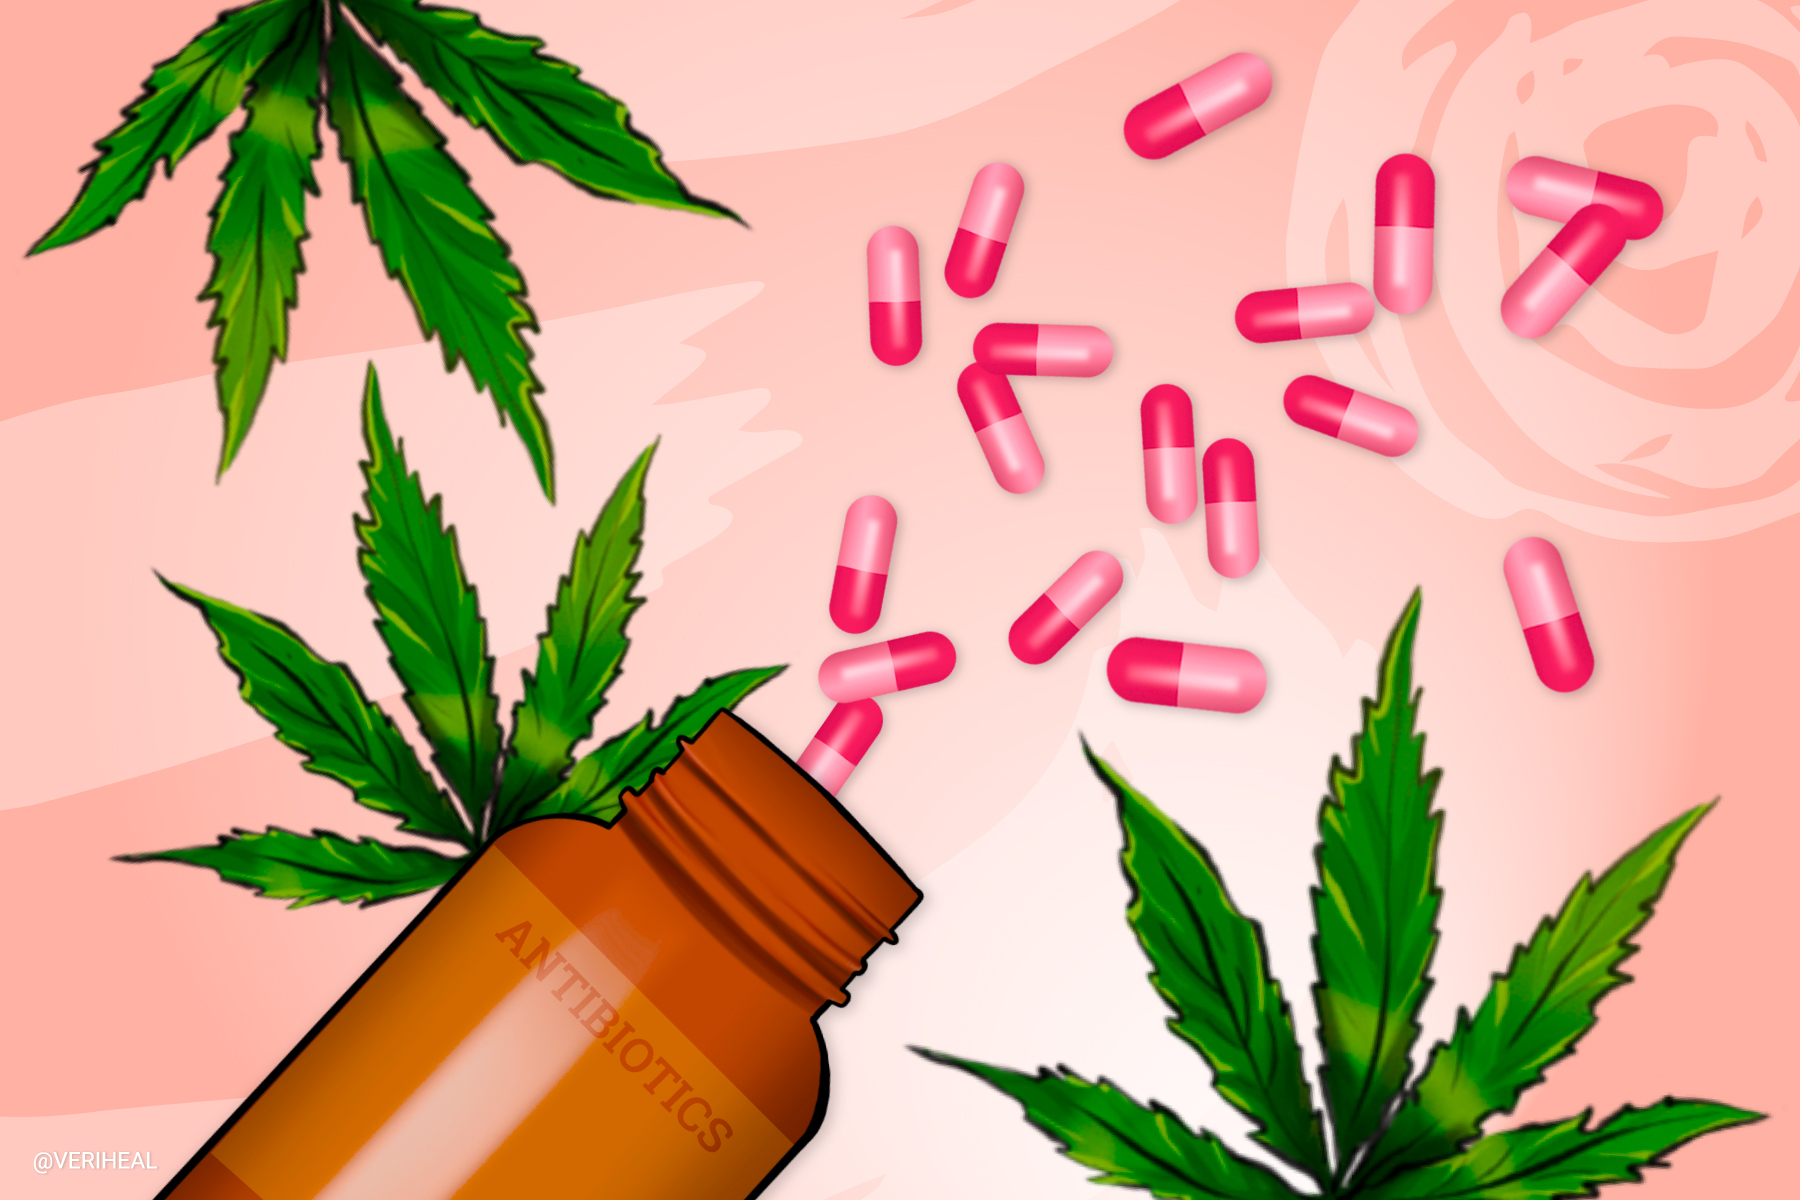 Is it Safe to Consume Cannabis While Taking Antibiotics?